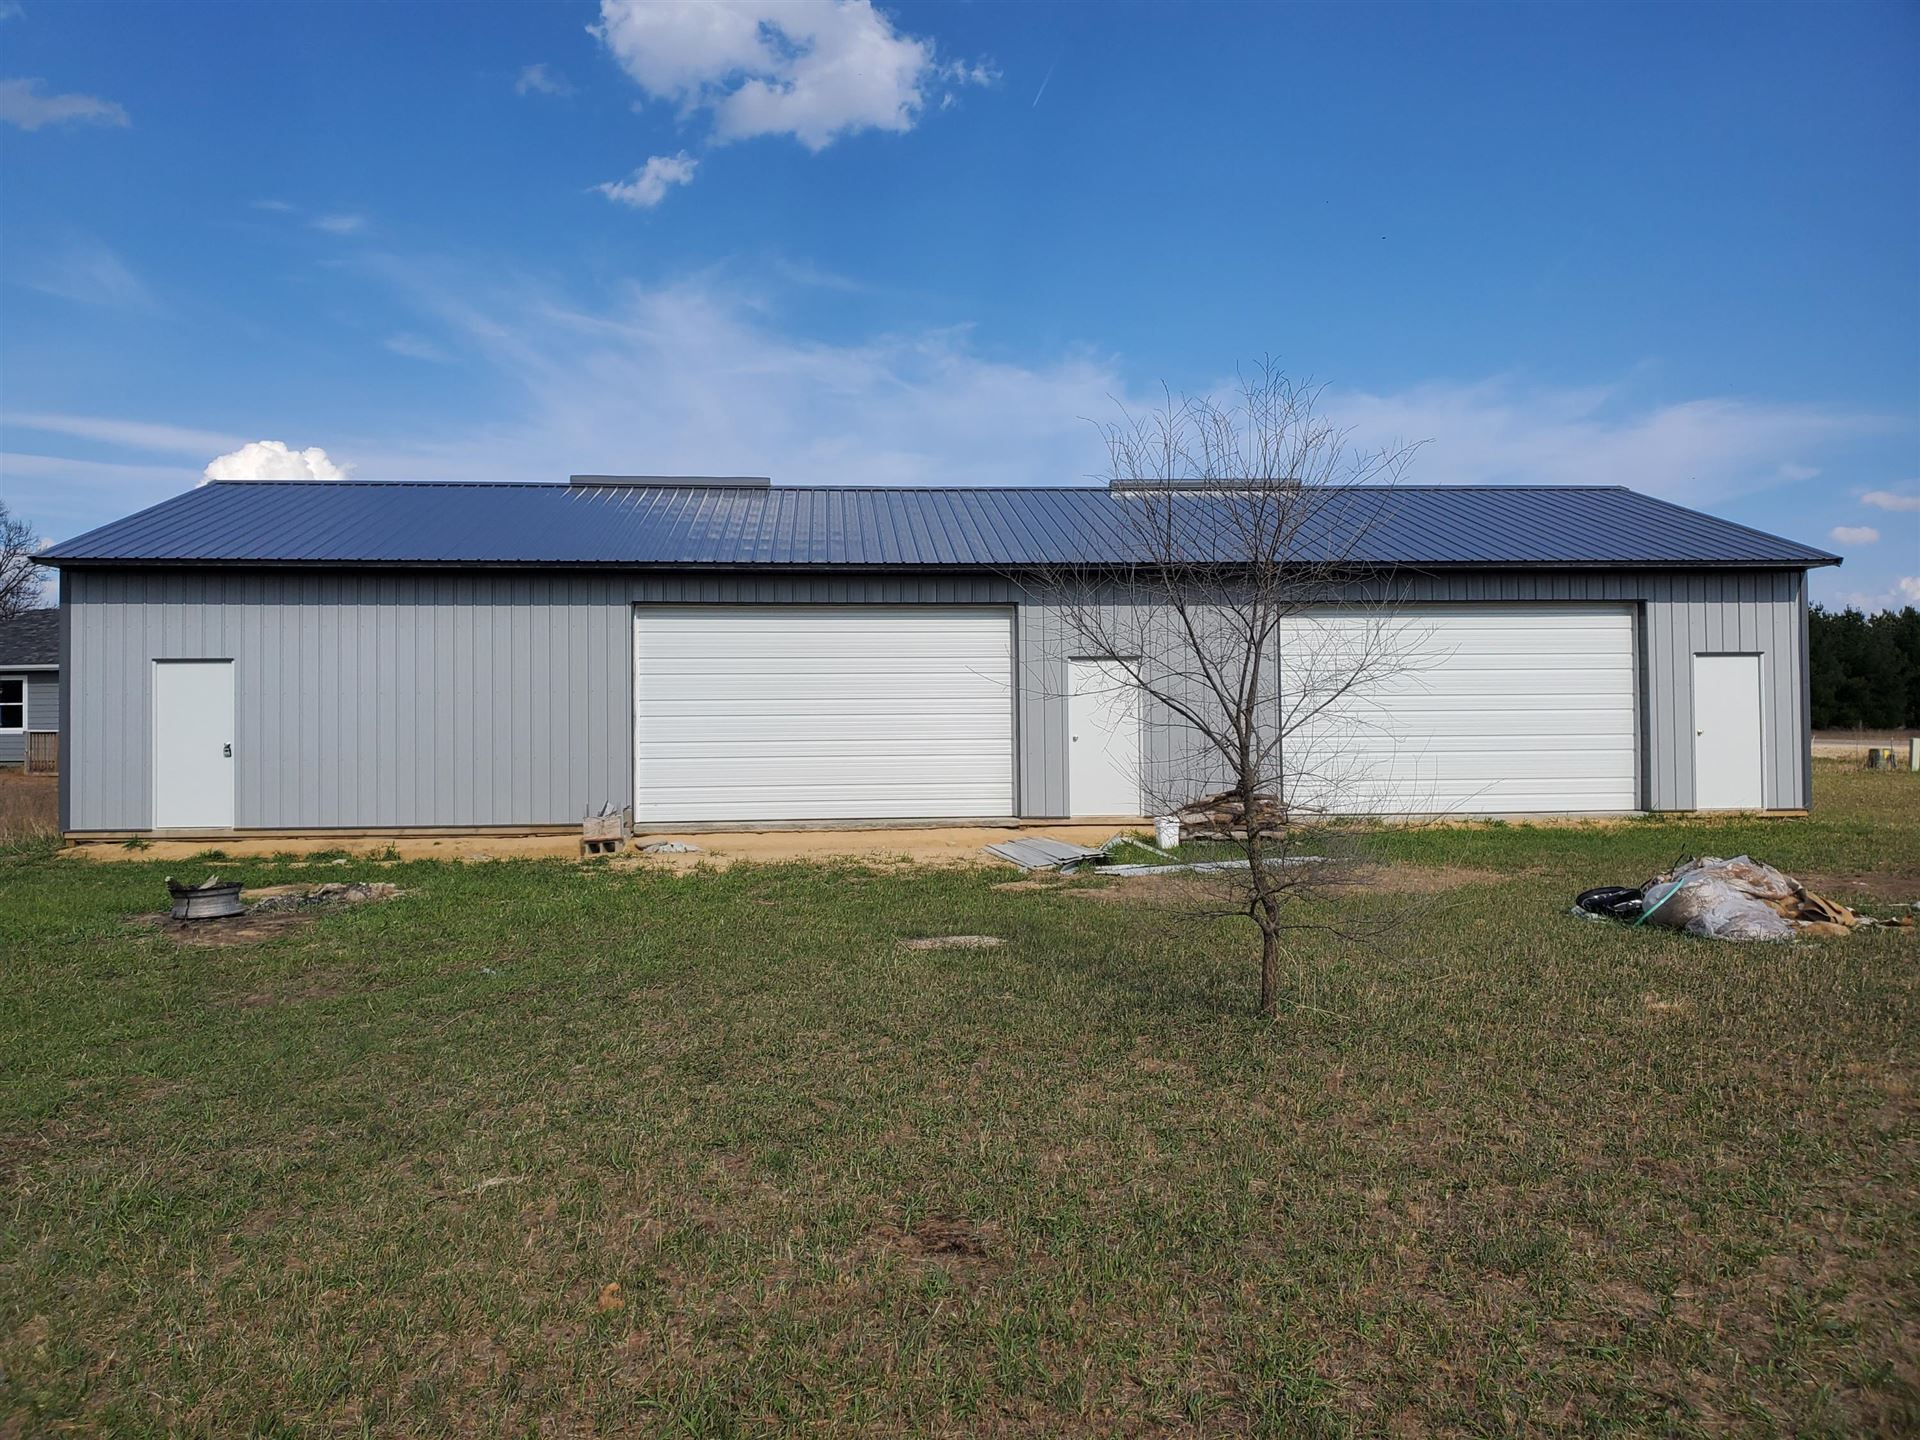 W7130 Heram Rd, Holland, WI 54636 - MLS#: 1687574